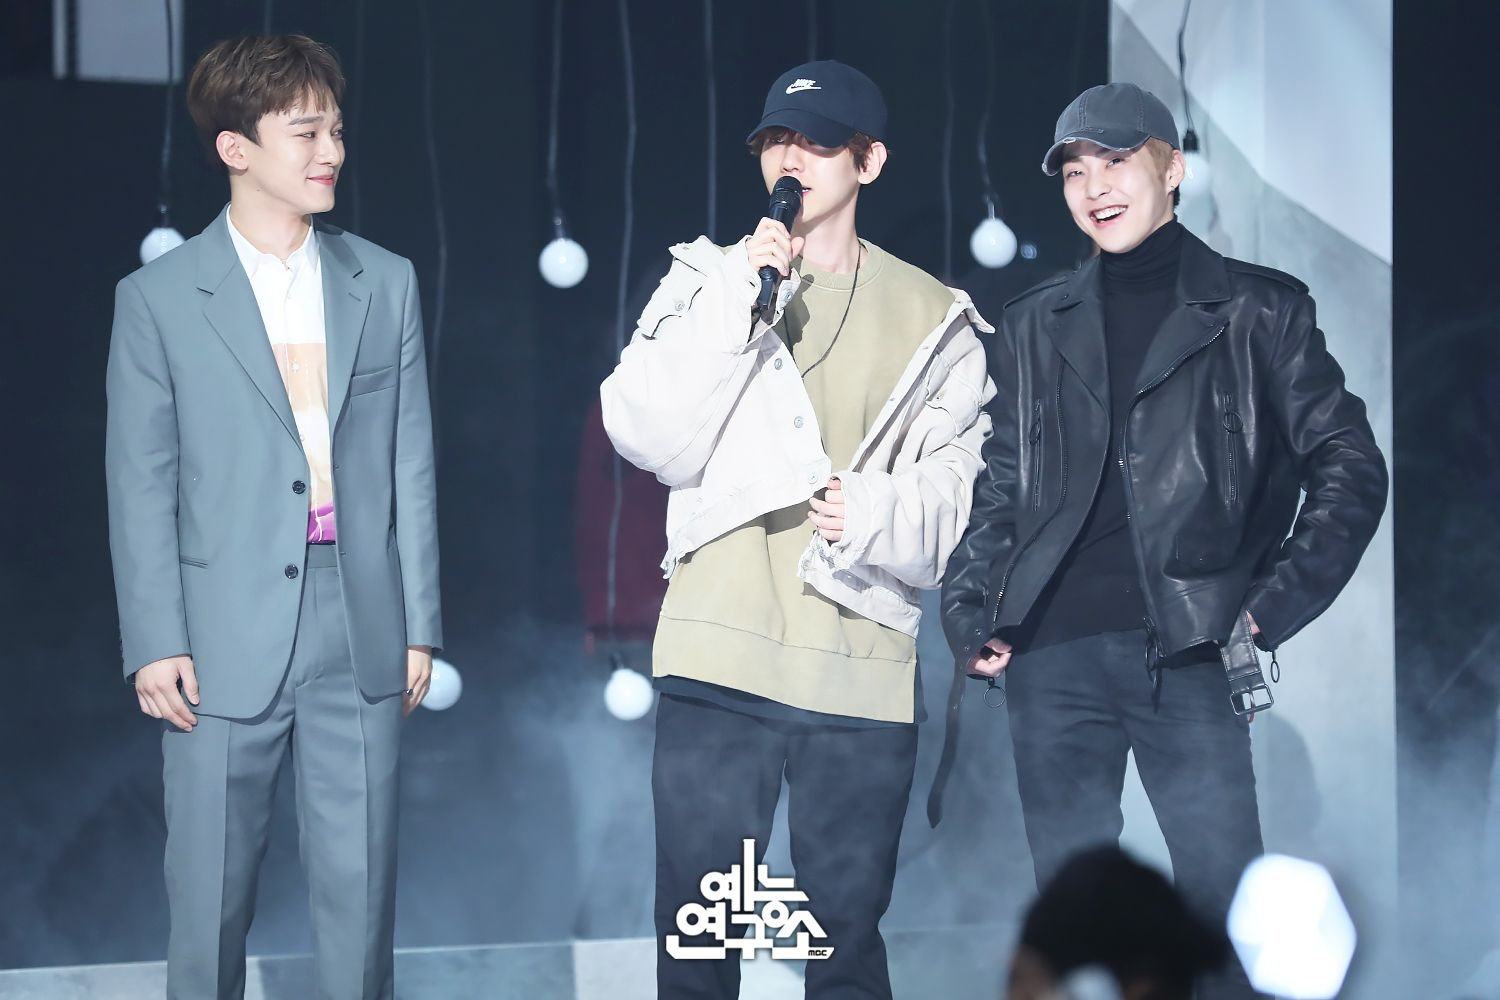 chen baek xi music core